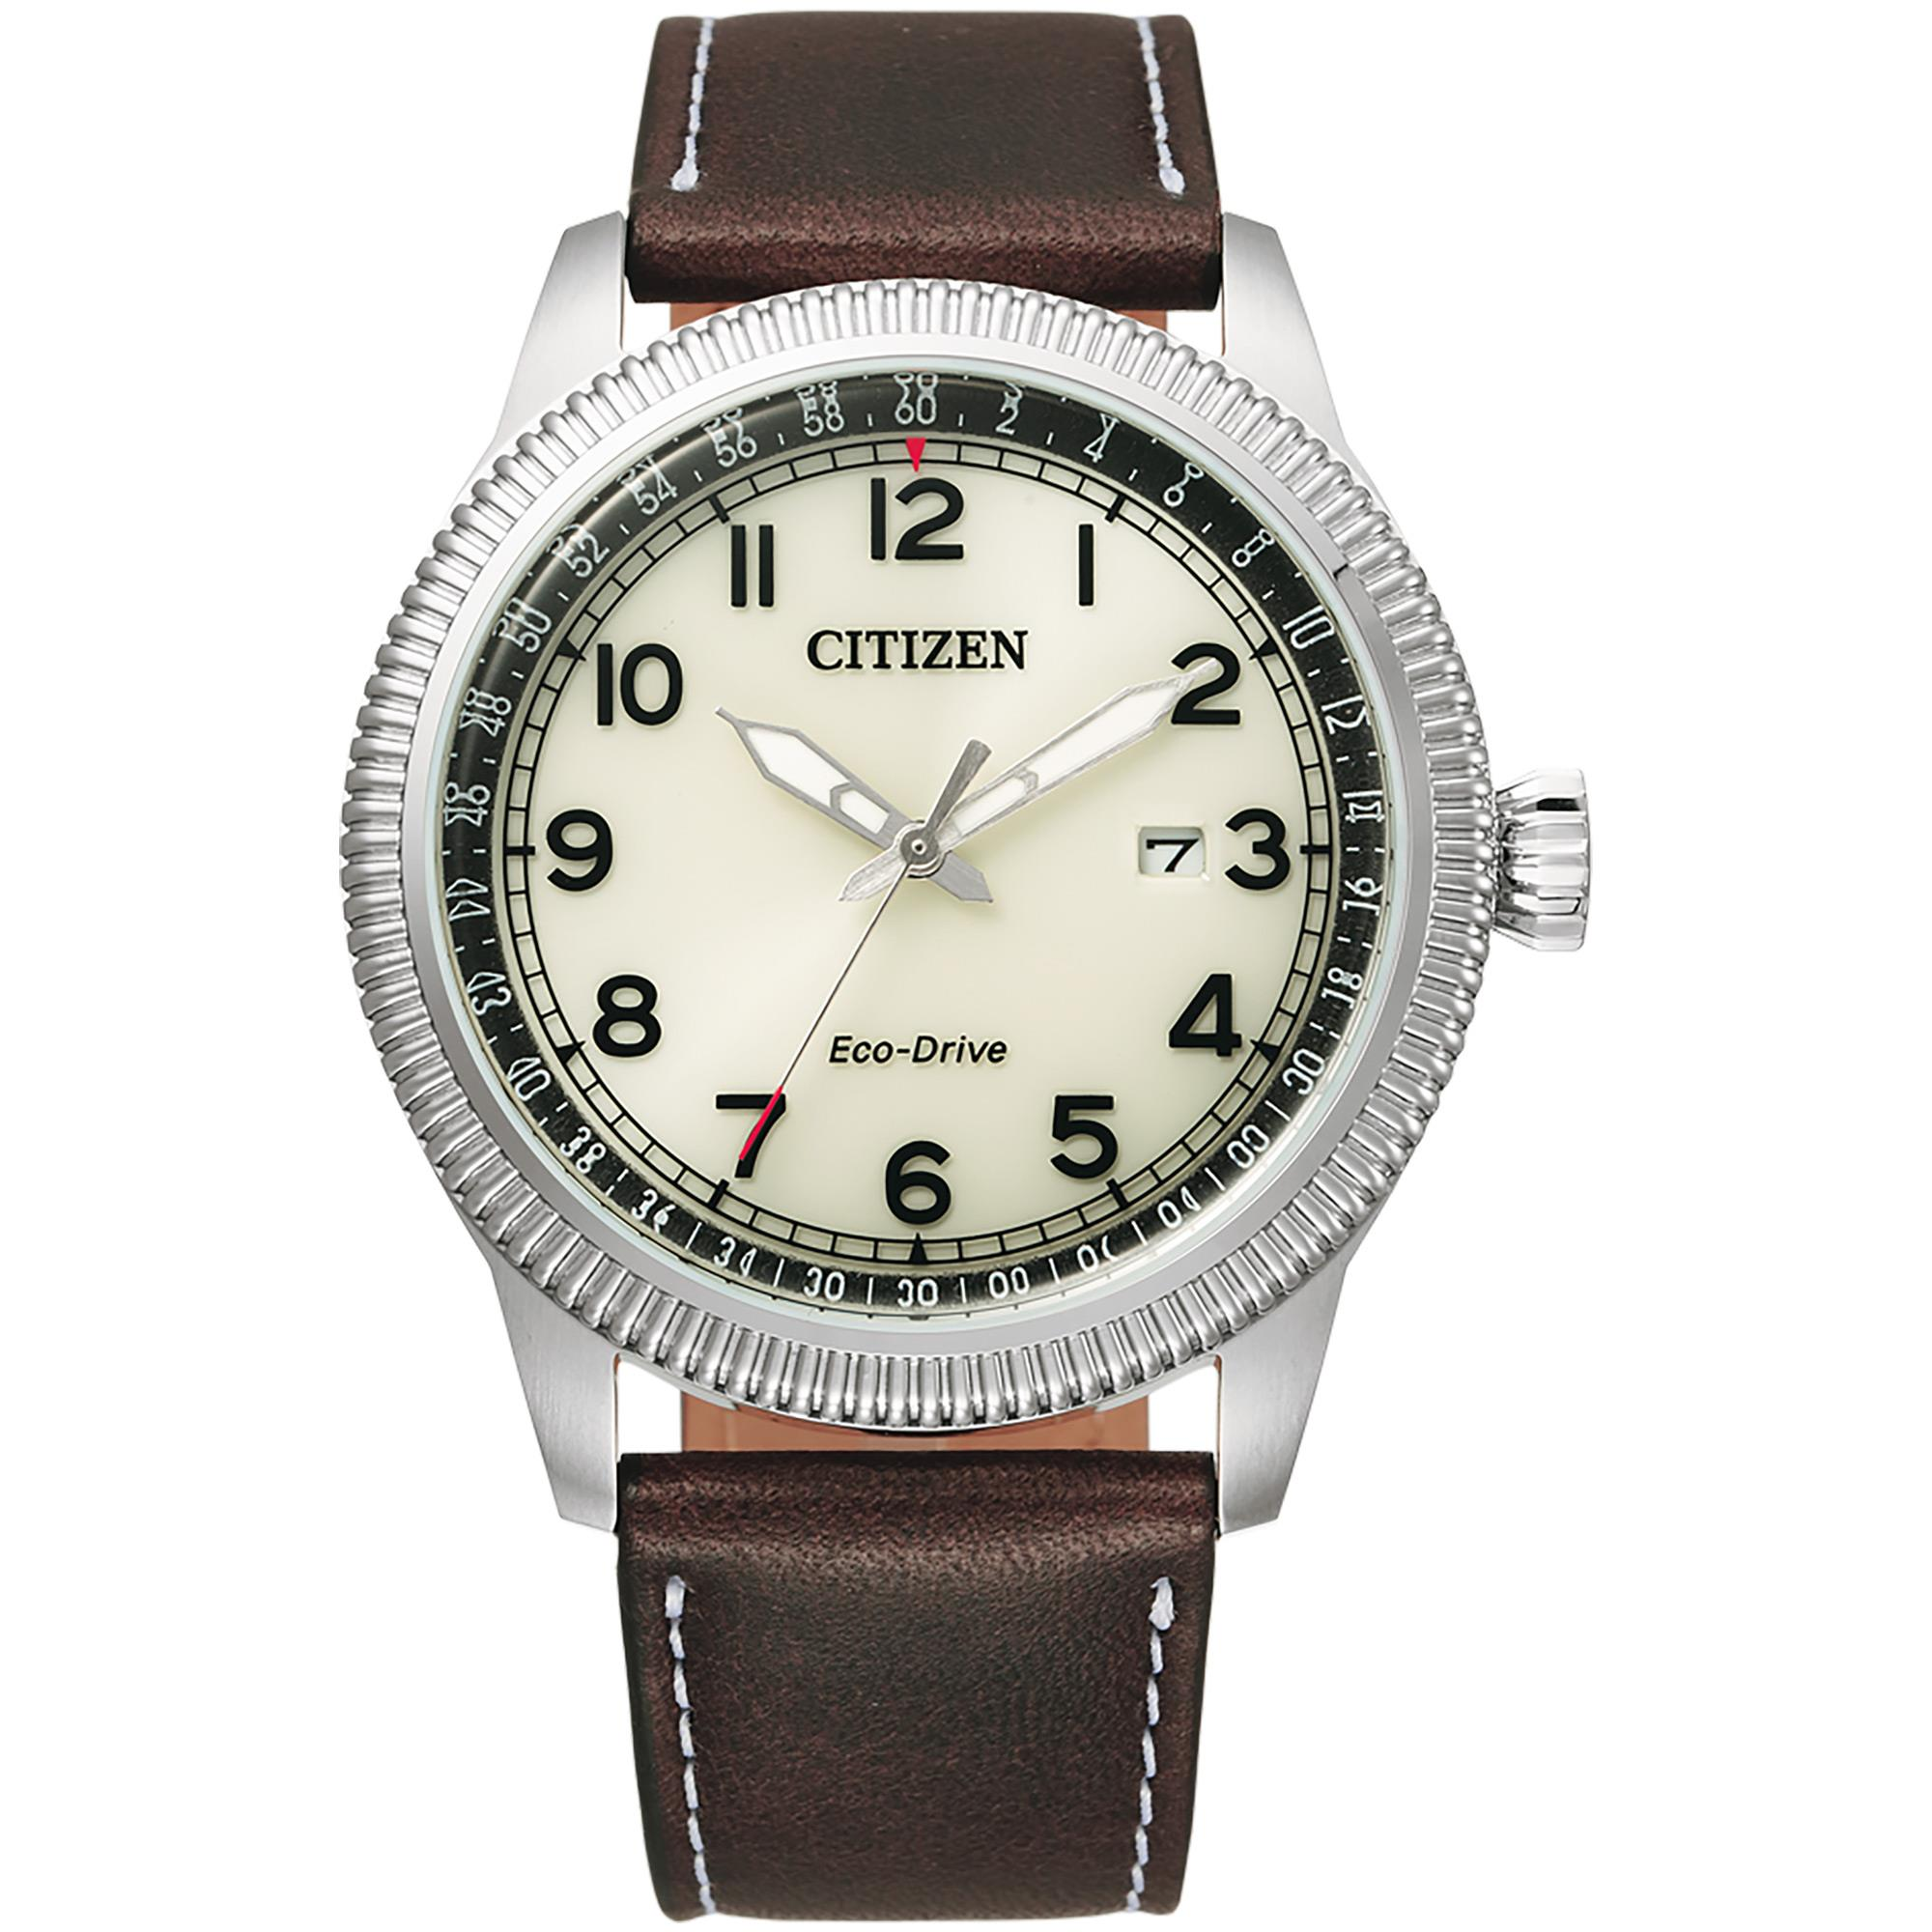 Orologio Aviator Of Collection Uomo Pelle - CITIZEN